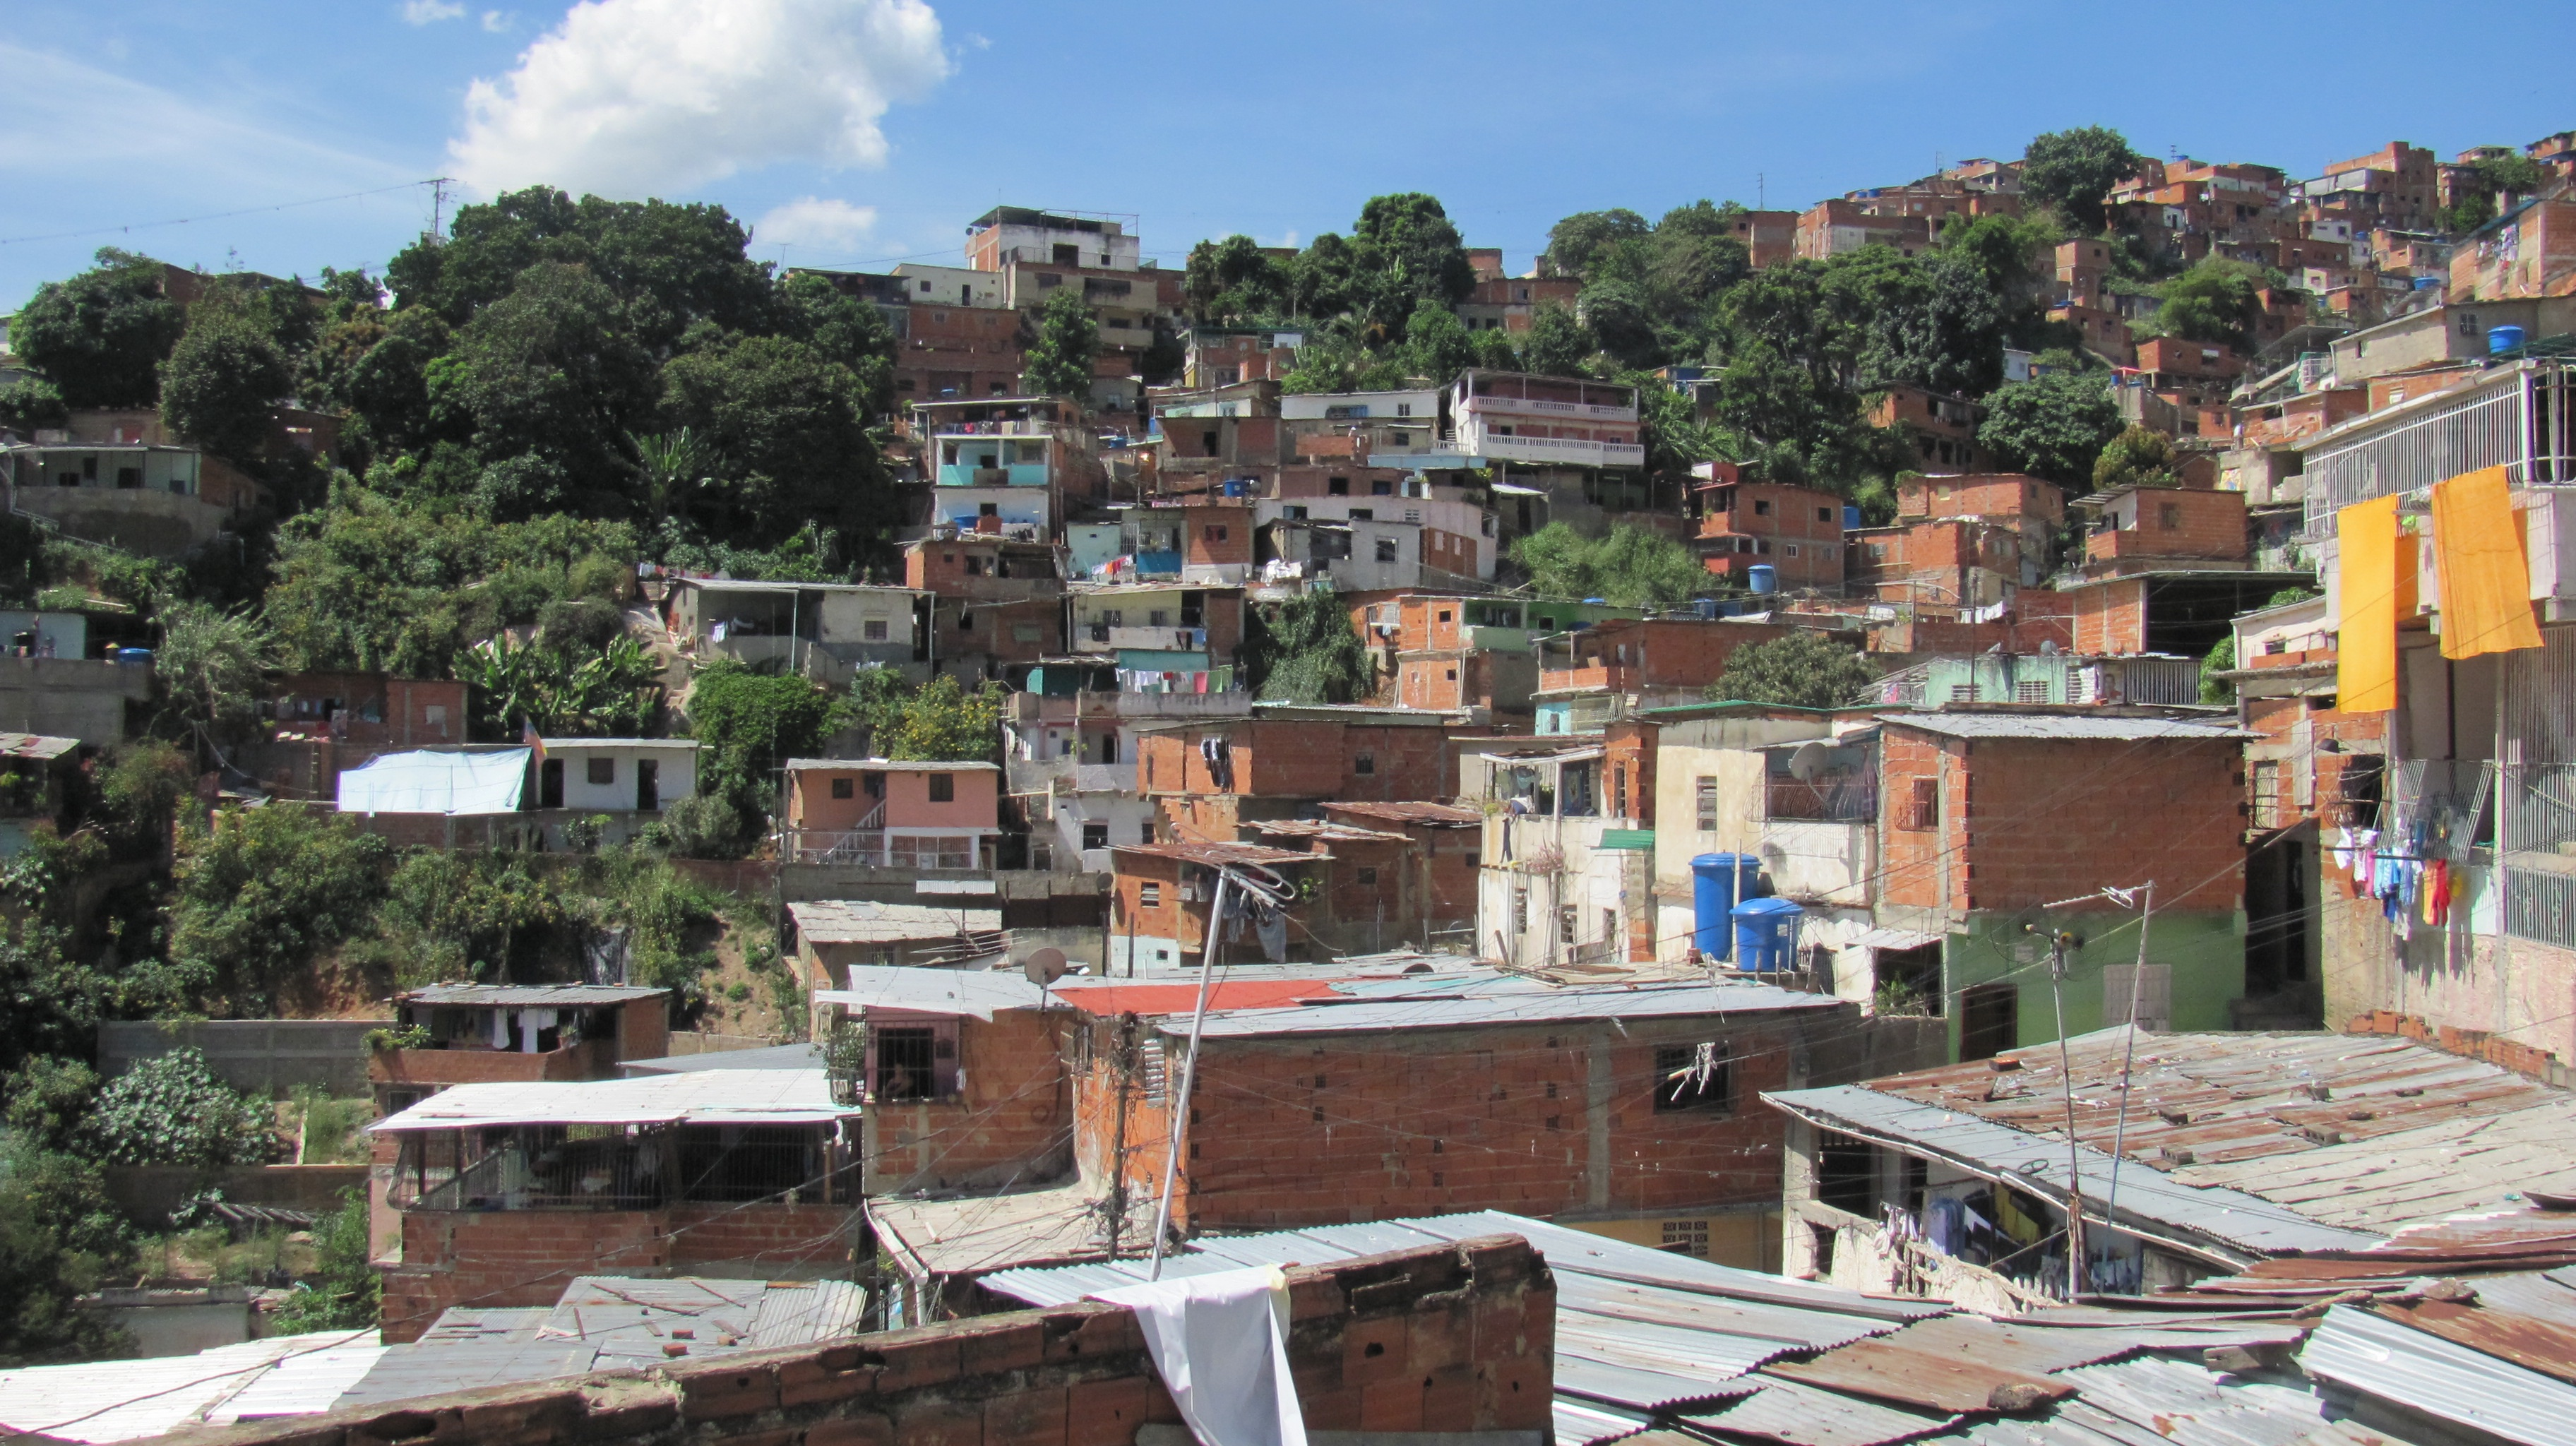 Providing water to Caracas's hillside barrios such as Antímano is no easy feat. Photo: Rebecca McMillan